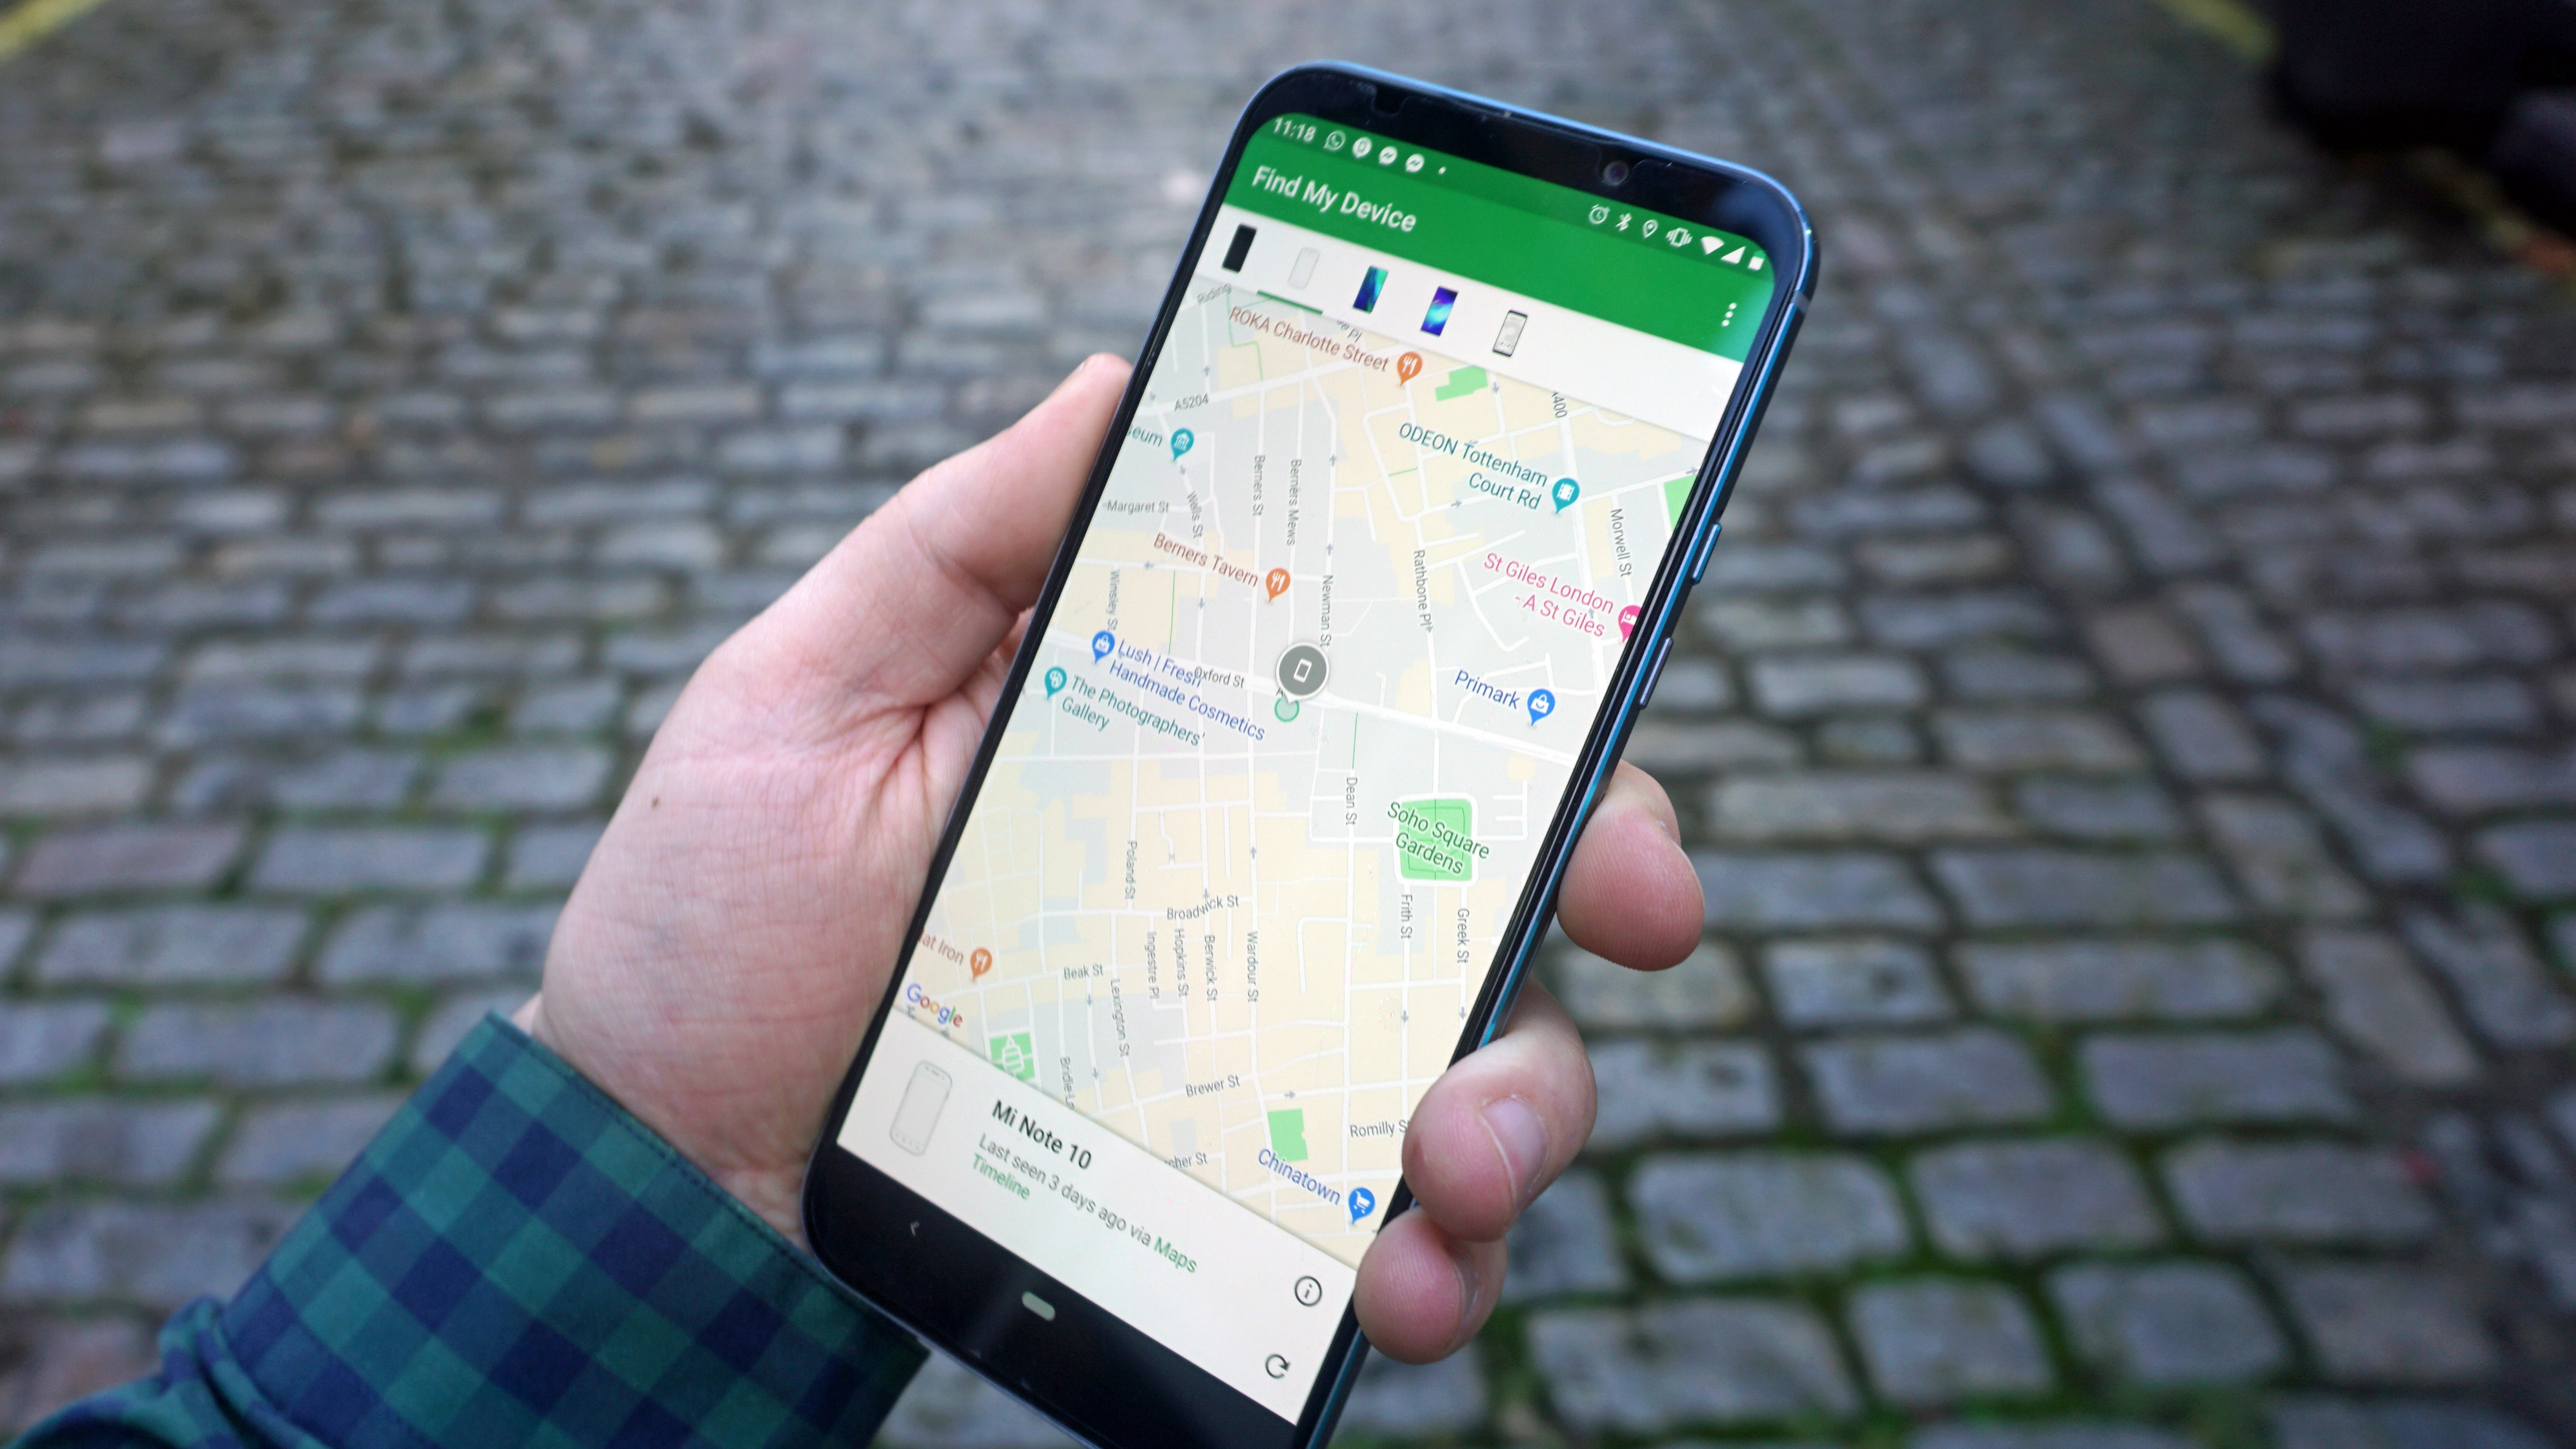 My smartphone was stolen, but Google's Find My Device helped me get it back